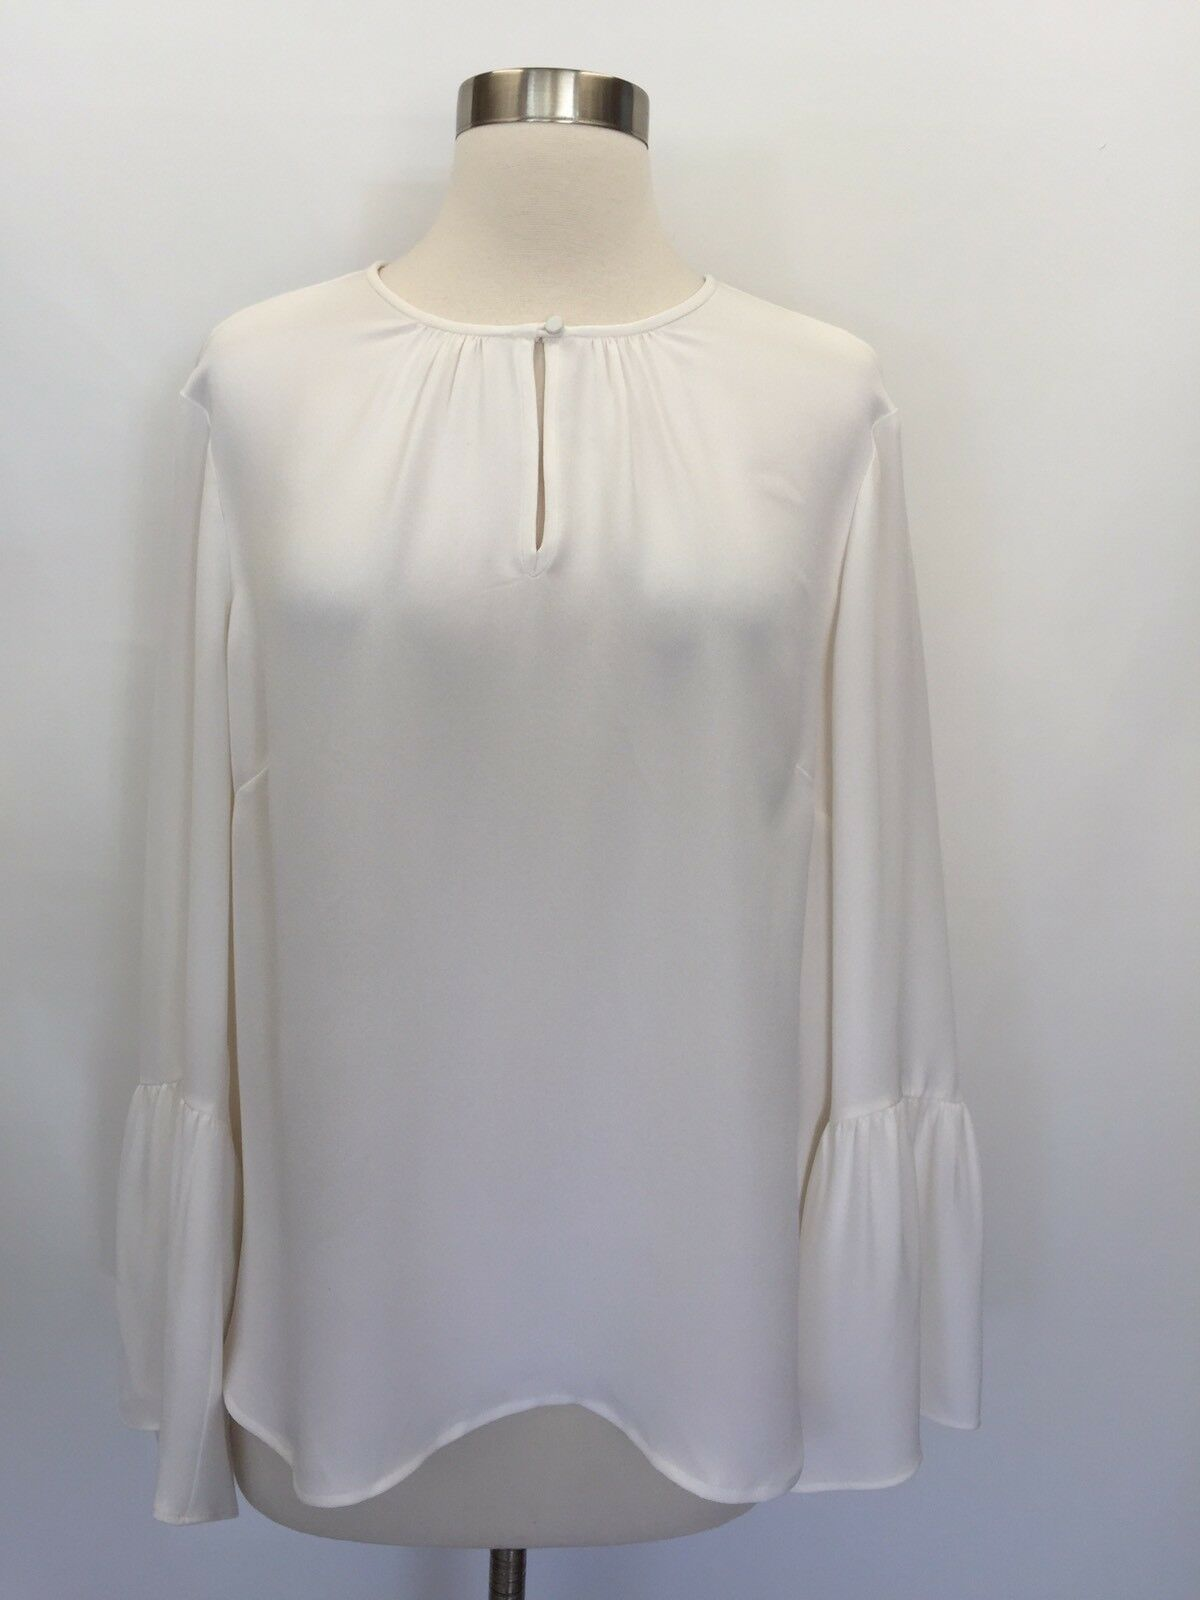 New G2467 J.CREW Ivory Silk Bell-Sleeve Top Blouse Größe 14  Sold Out